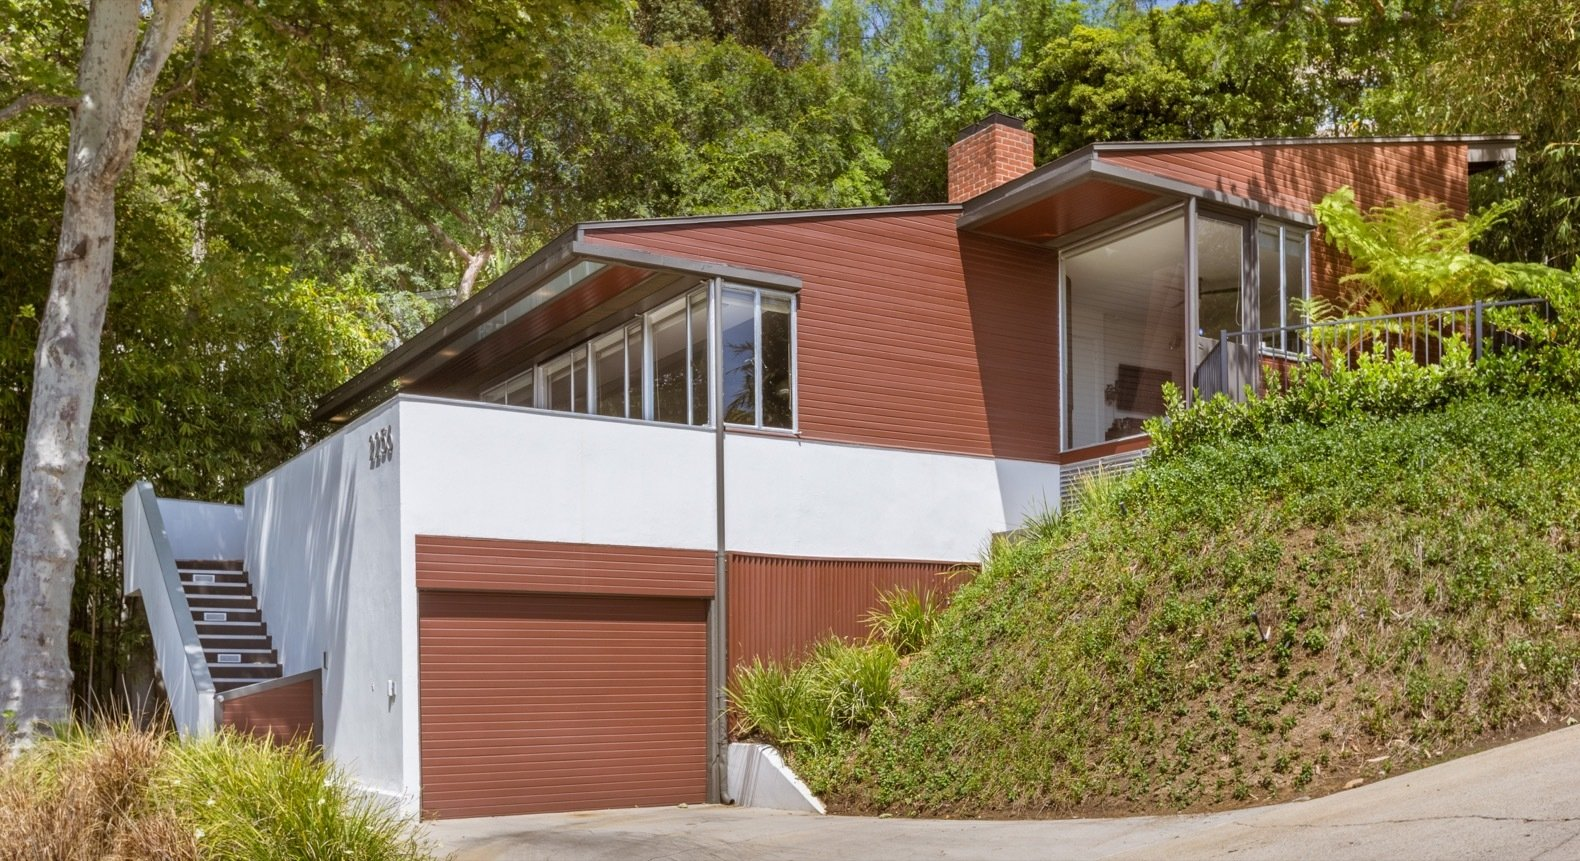 Architecture For Sale has listed the property for $1.8M.